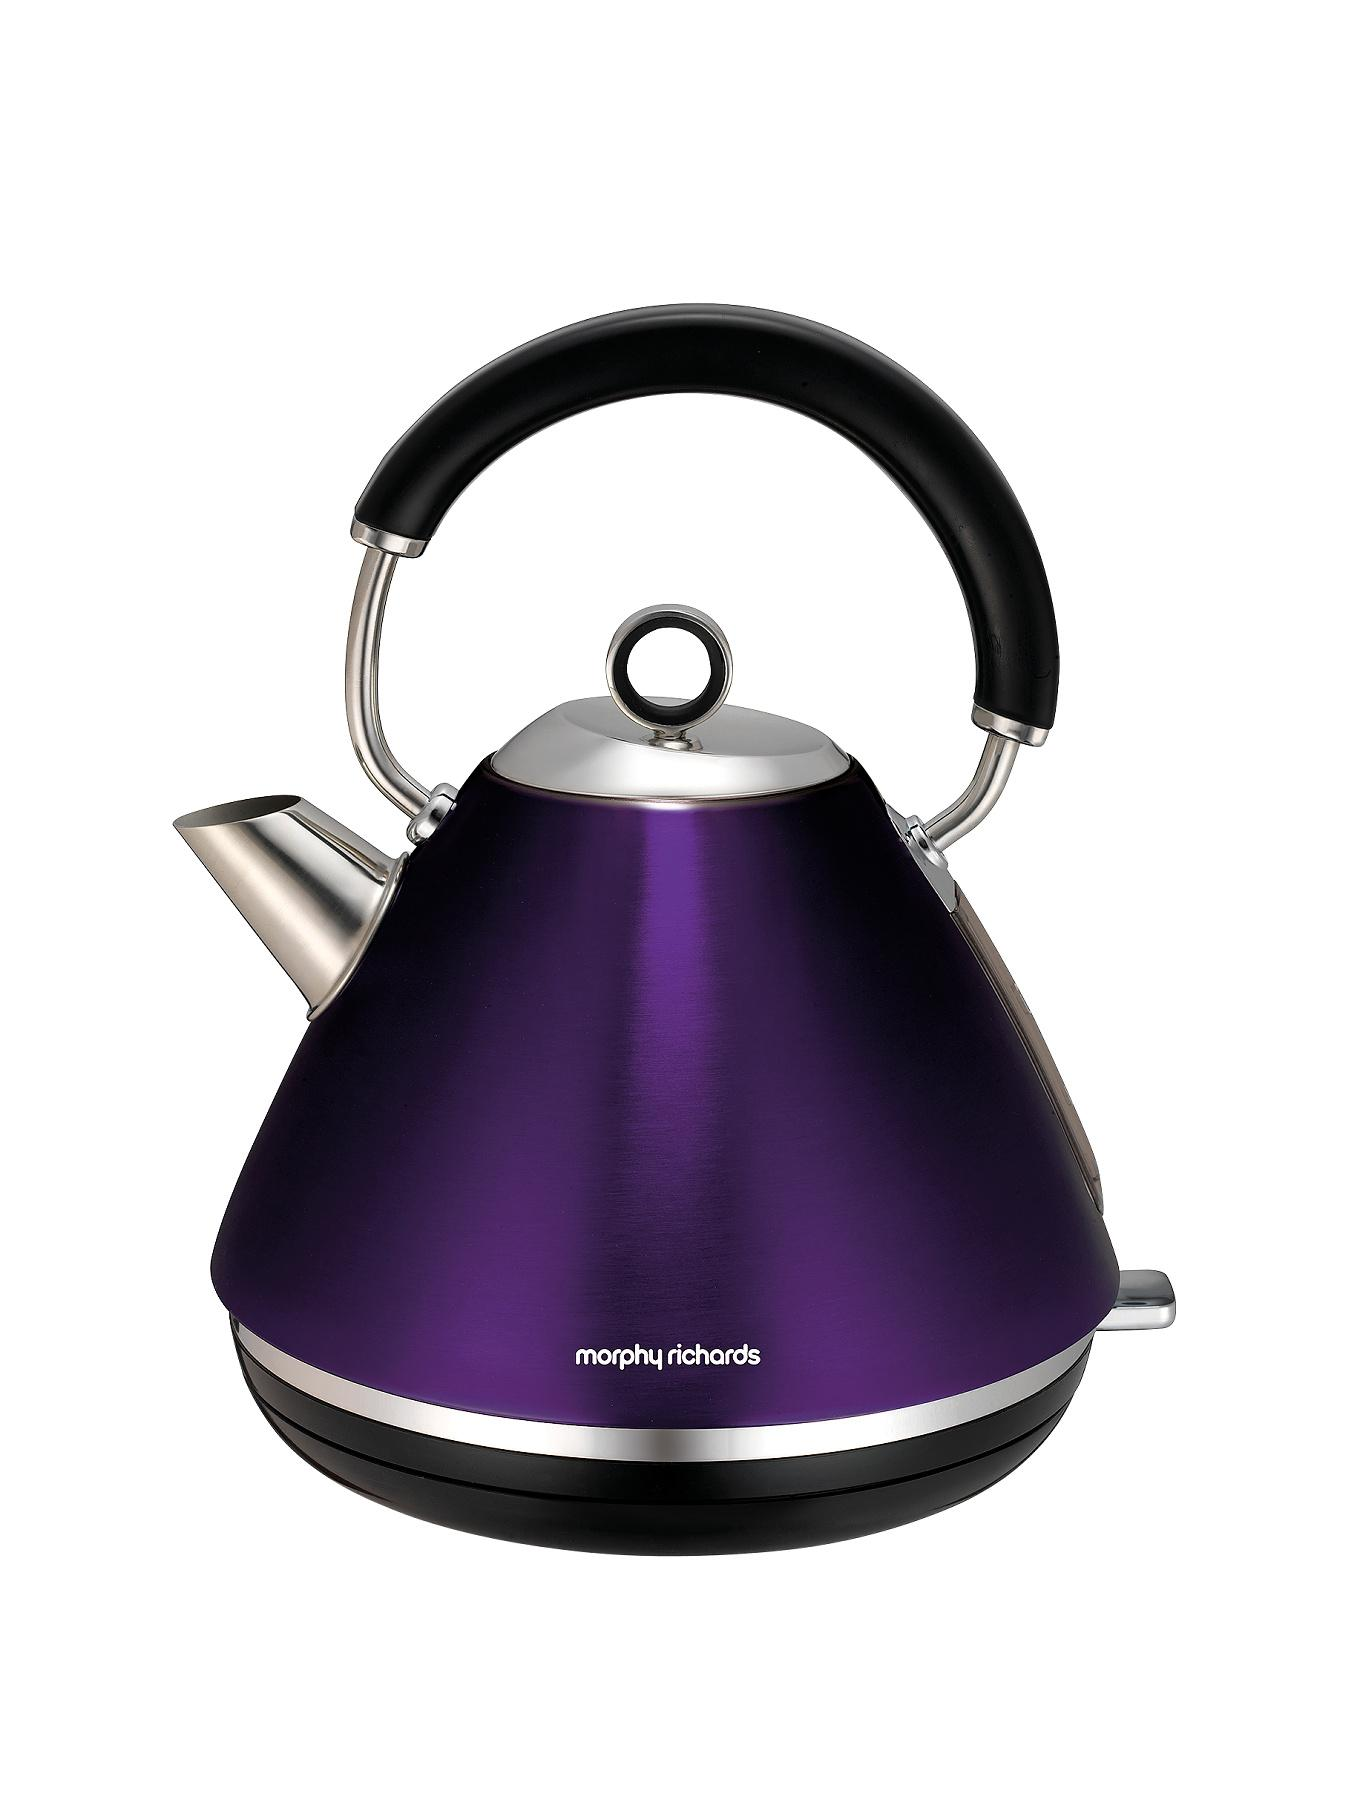 Morphy Richards Kettle Toaster Black Accents Rose Gold